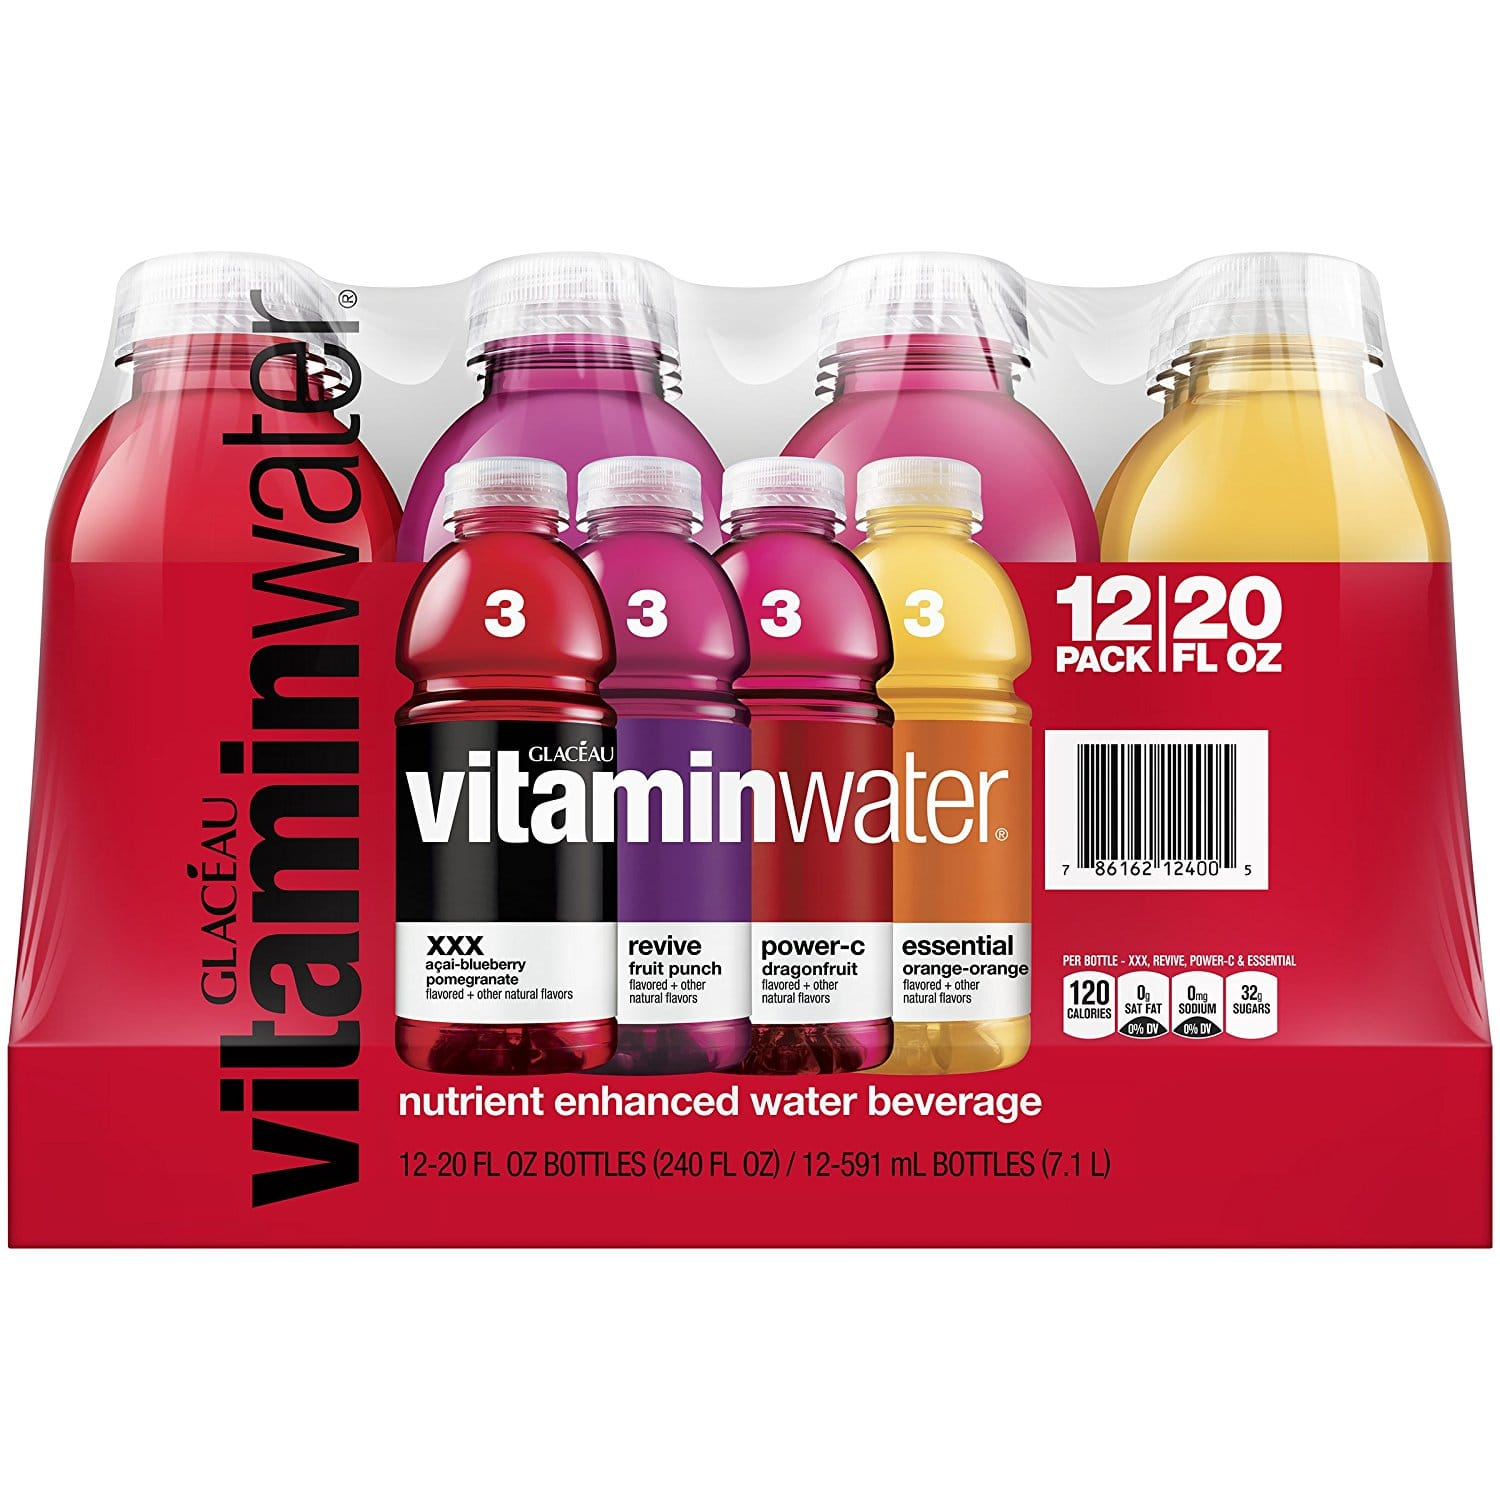 Prime Members: 12-Pack of 20oz Vitaminwater Variety Pack $7.14 or Less w/ S&S + Free Shipping ~ Amazon